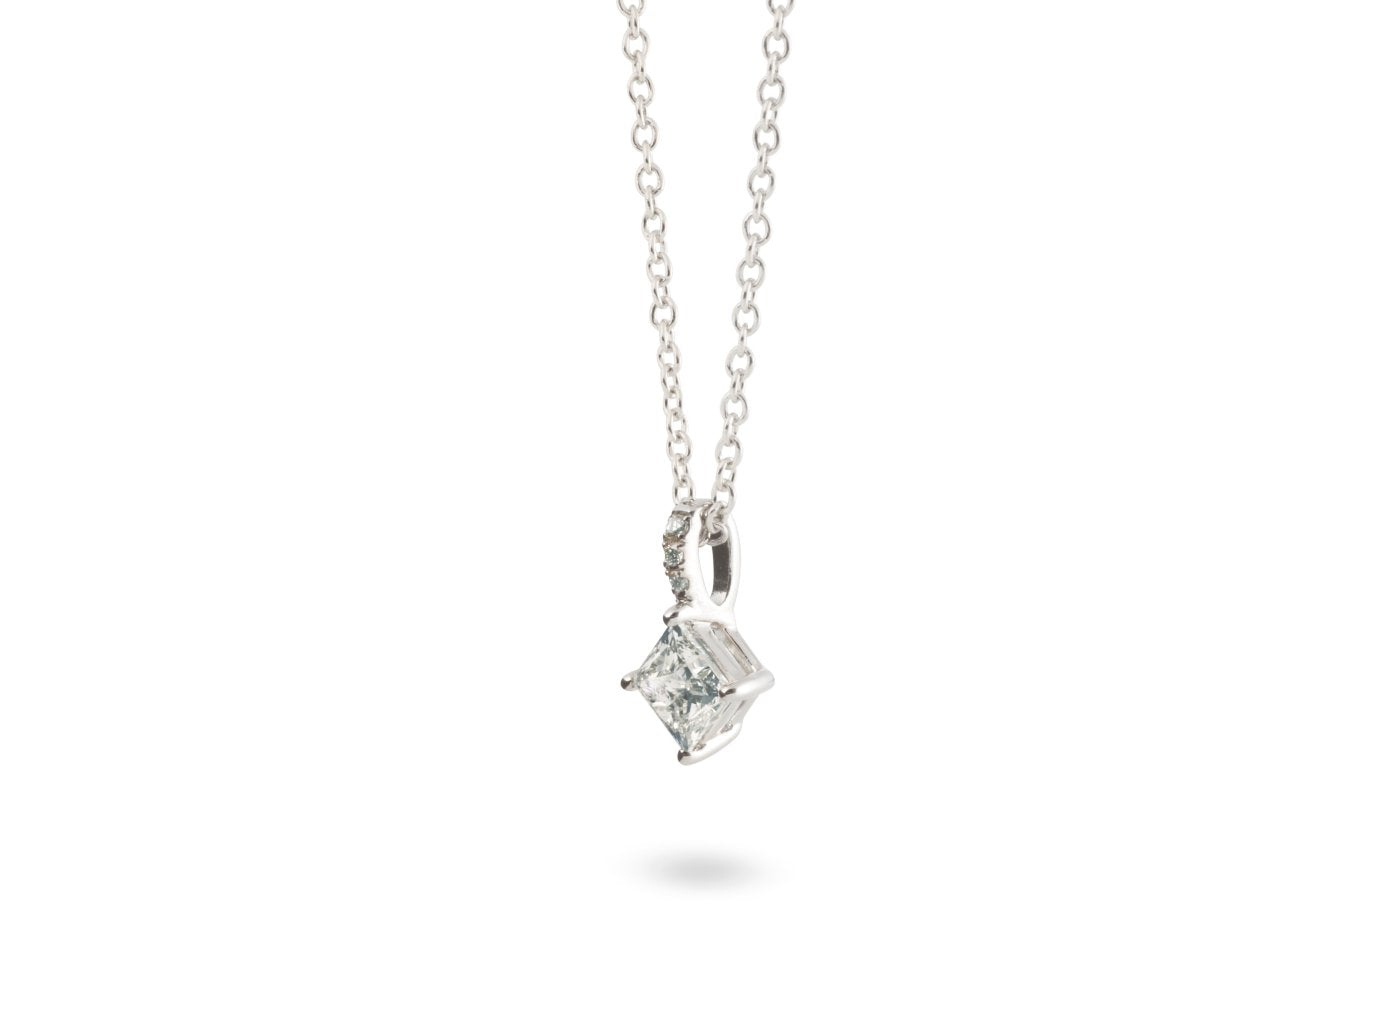 Side view of Princess Pavé 1/2 carat pendant with white diamonds